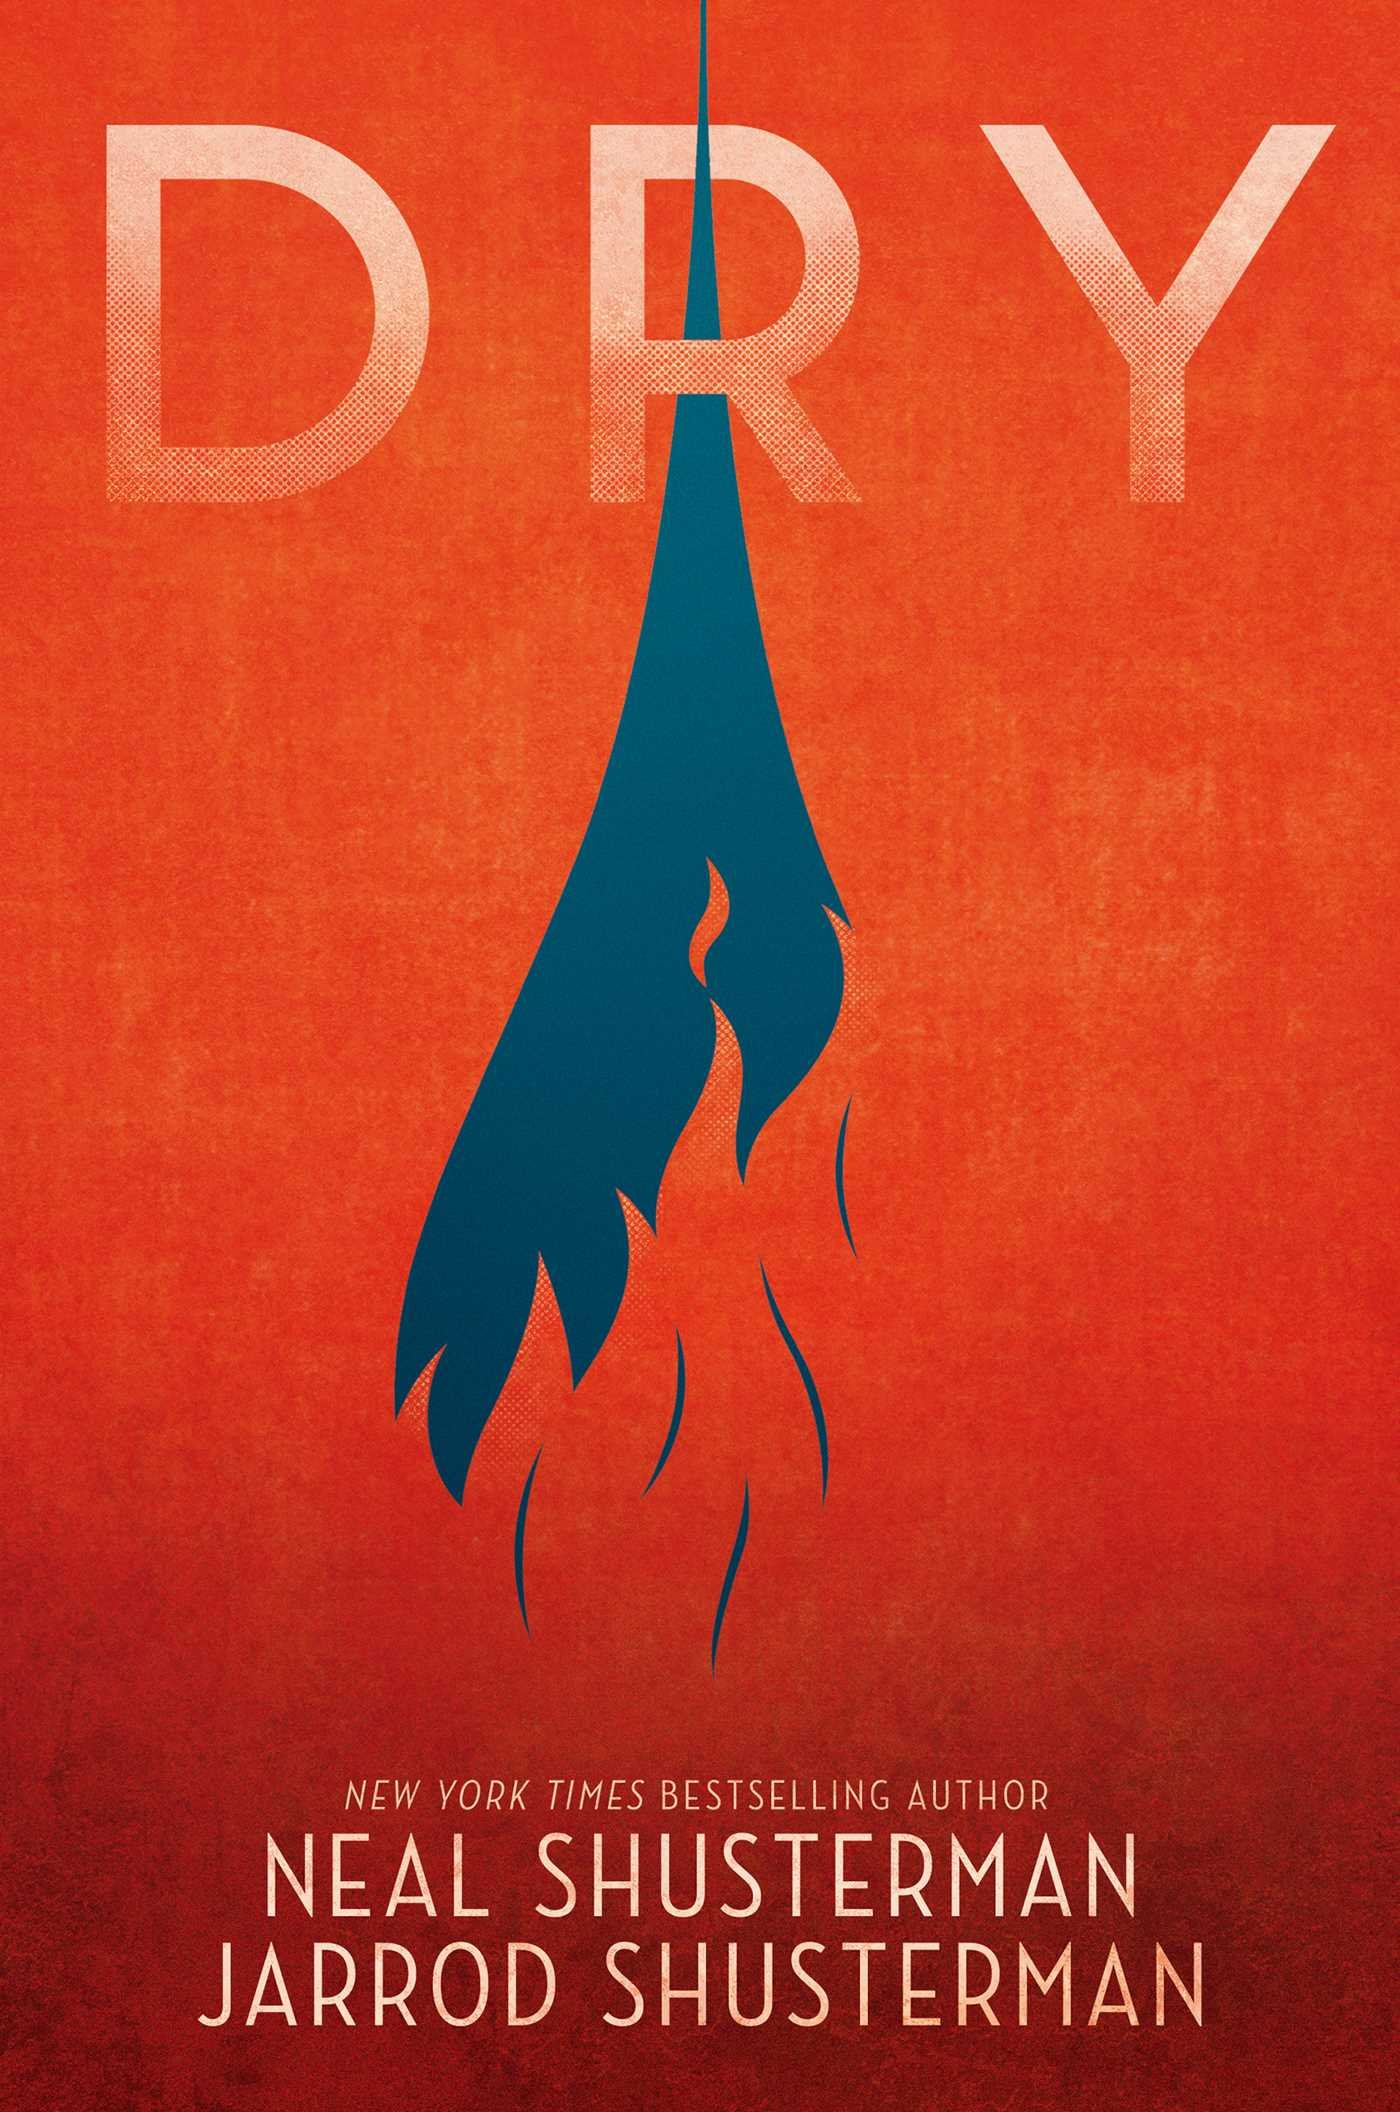 Cover art for the book entitled Dry